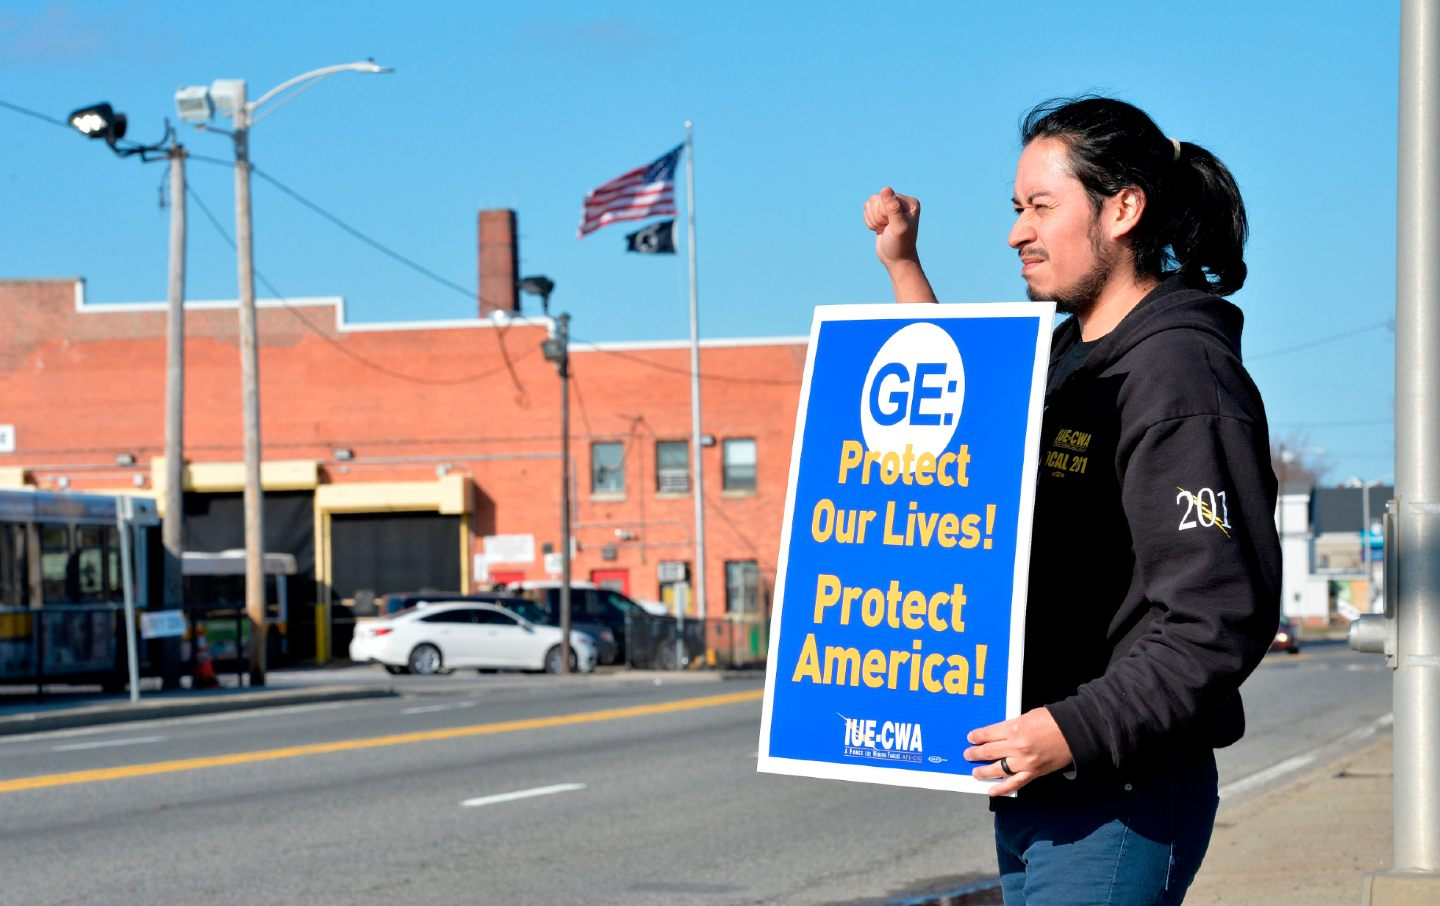 A GE worker stands outside the plant with a sign reading